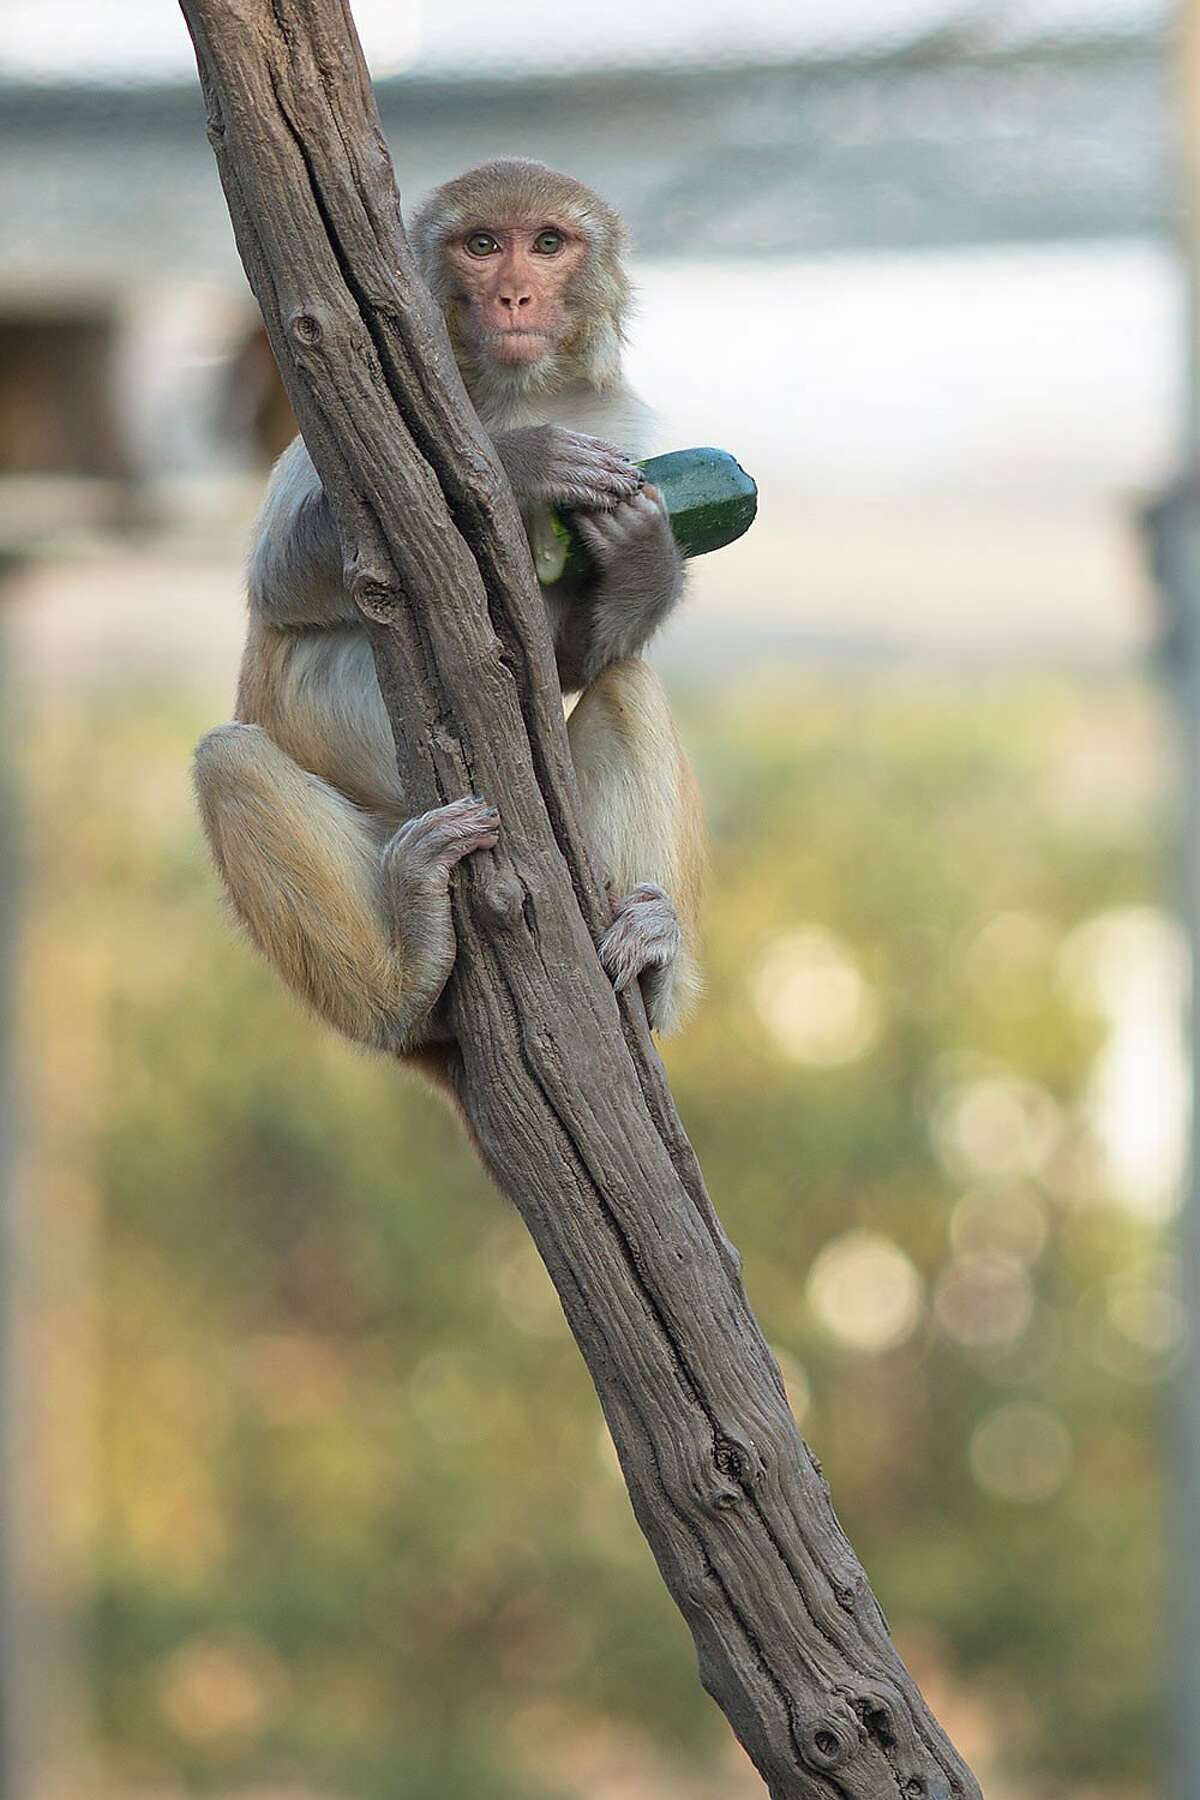 A monkey munches on a zucchini at the California National Primate Research Center at UC Davis, which relies on primates for medical and behavioral studies.